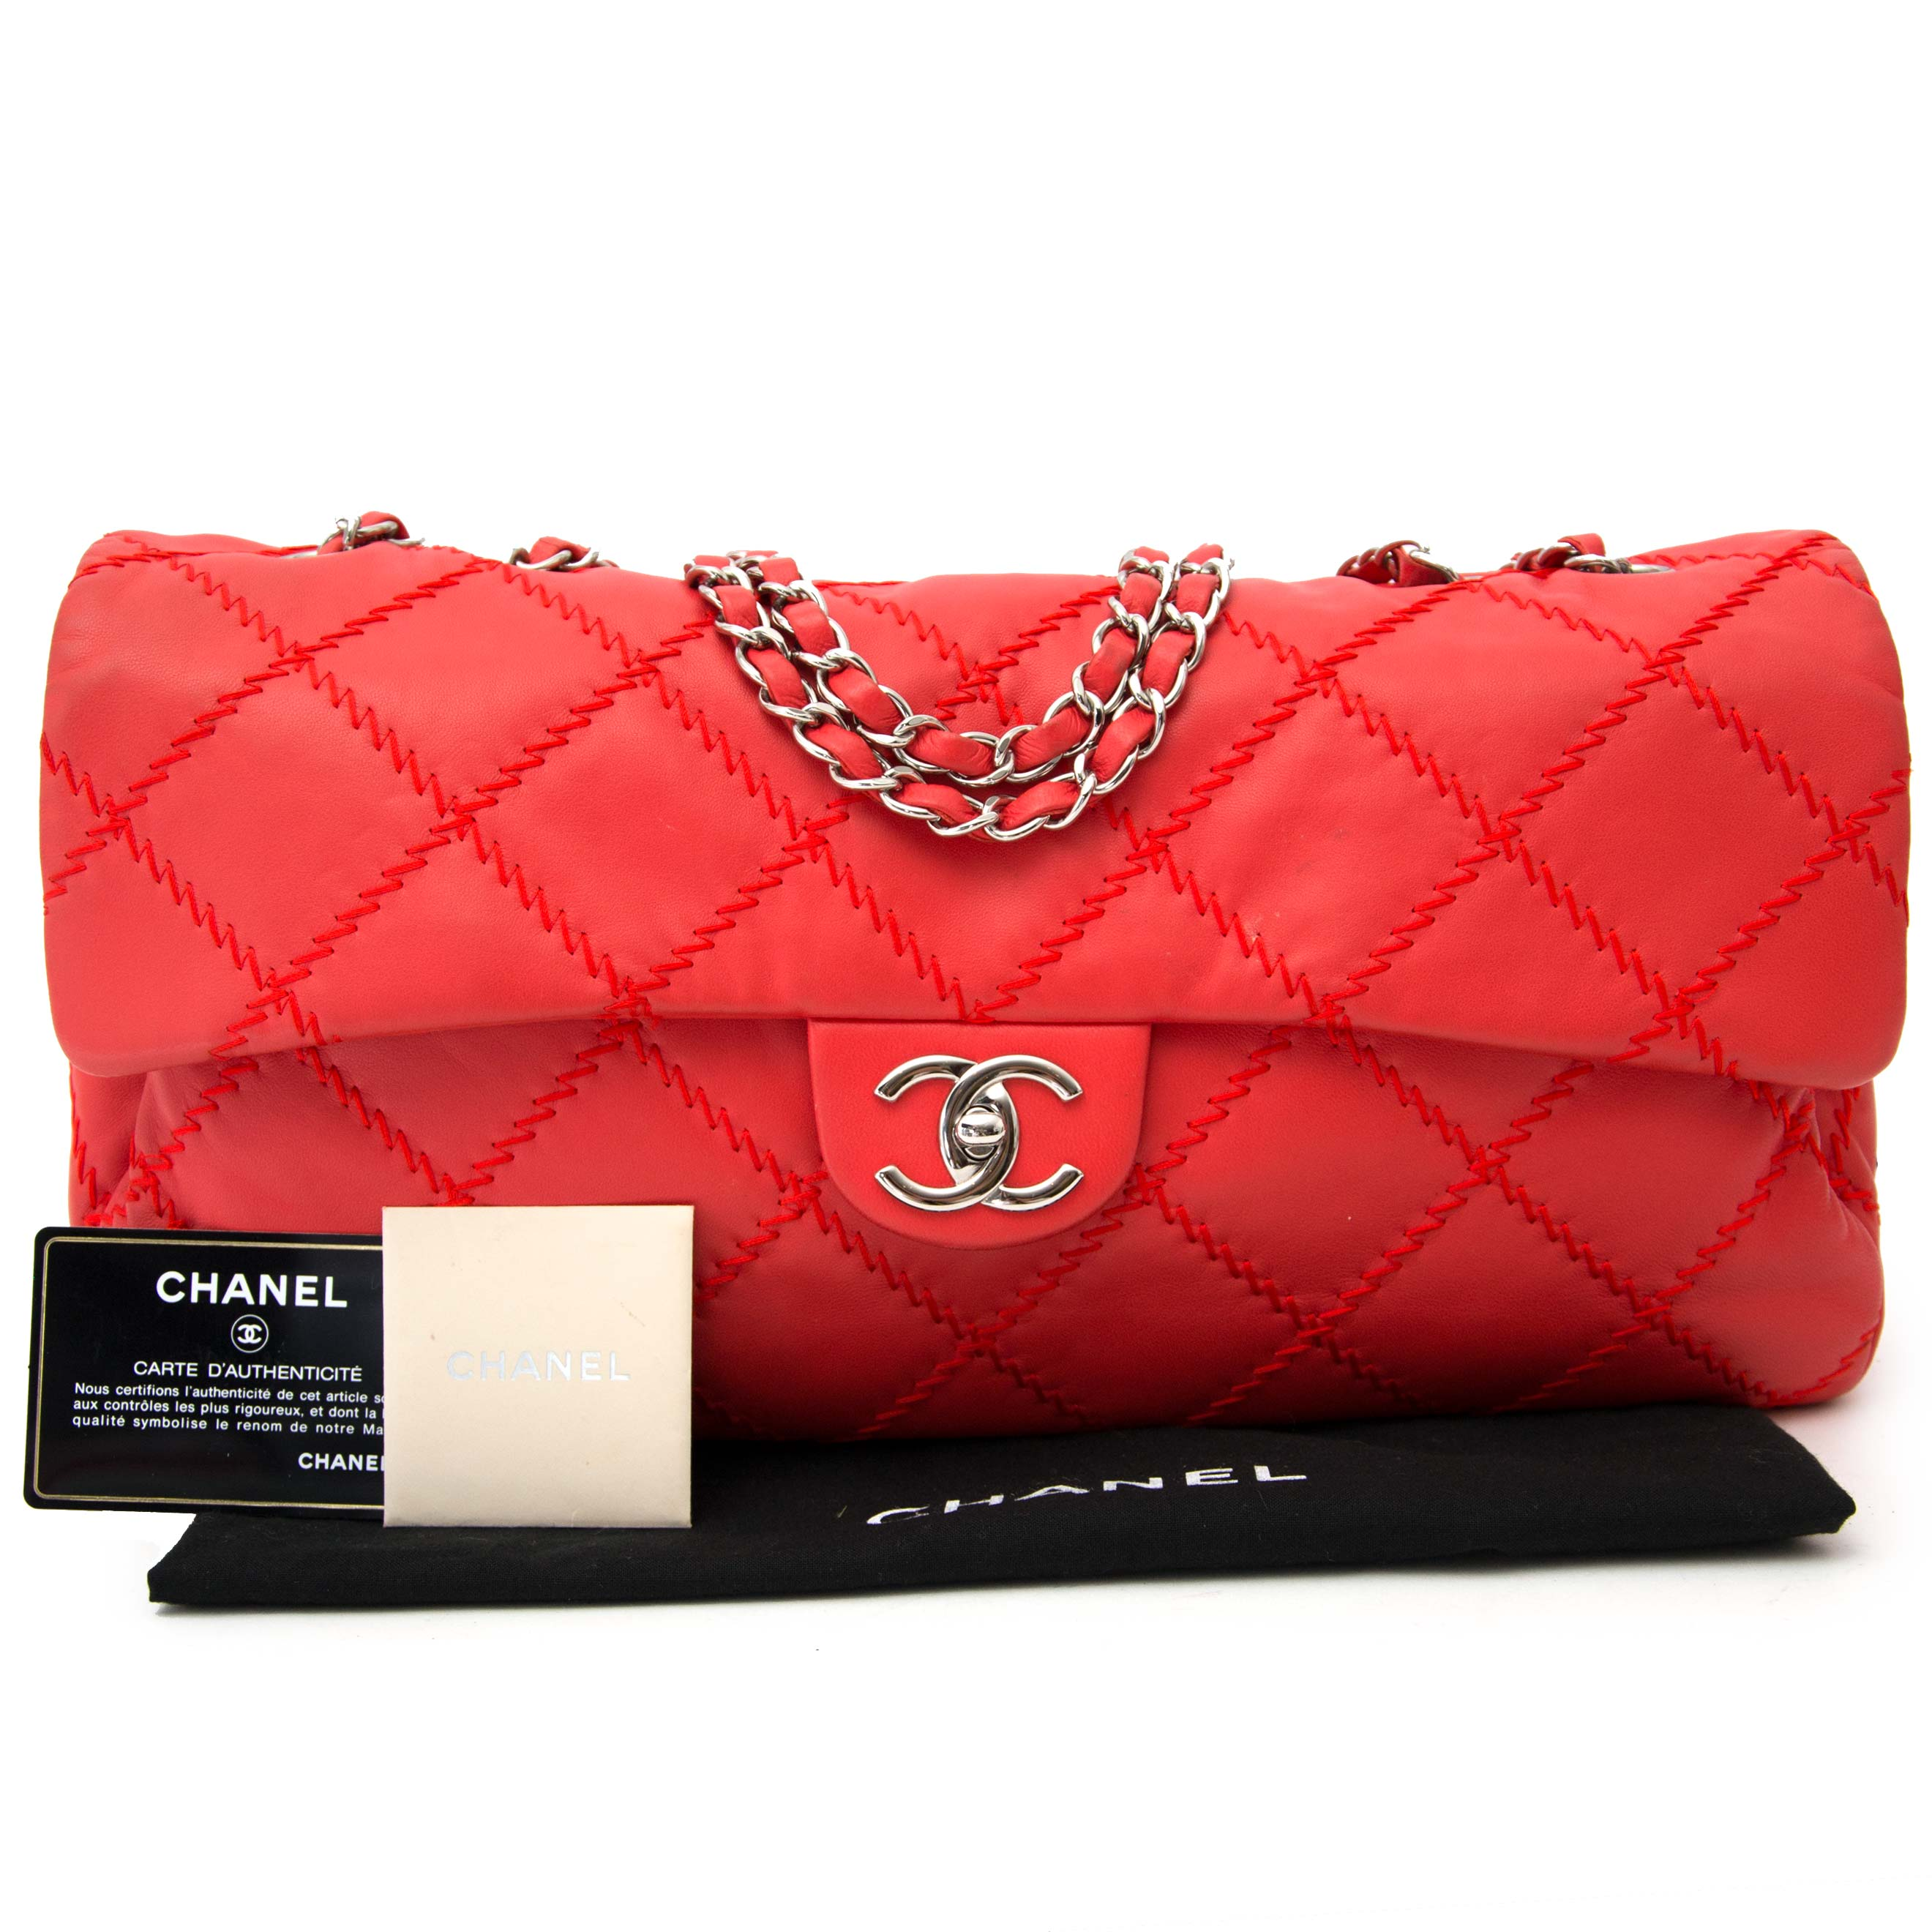 looking for a secondhand Chanel Vibrant Red East West Ultra Stitch Flap Bag?